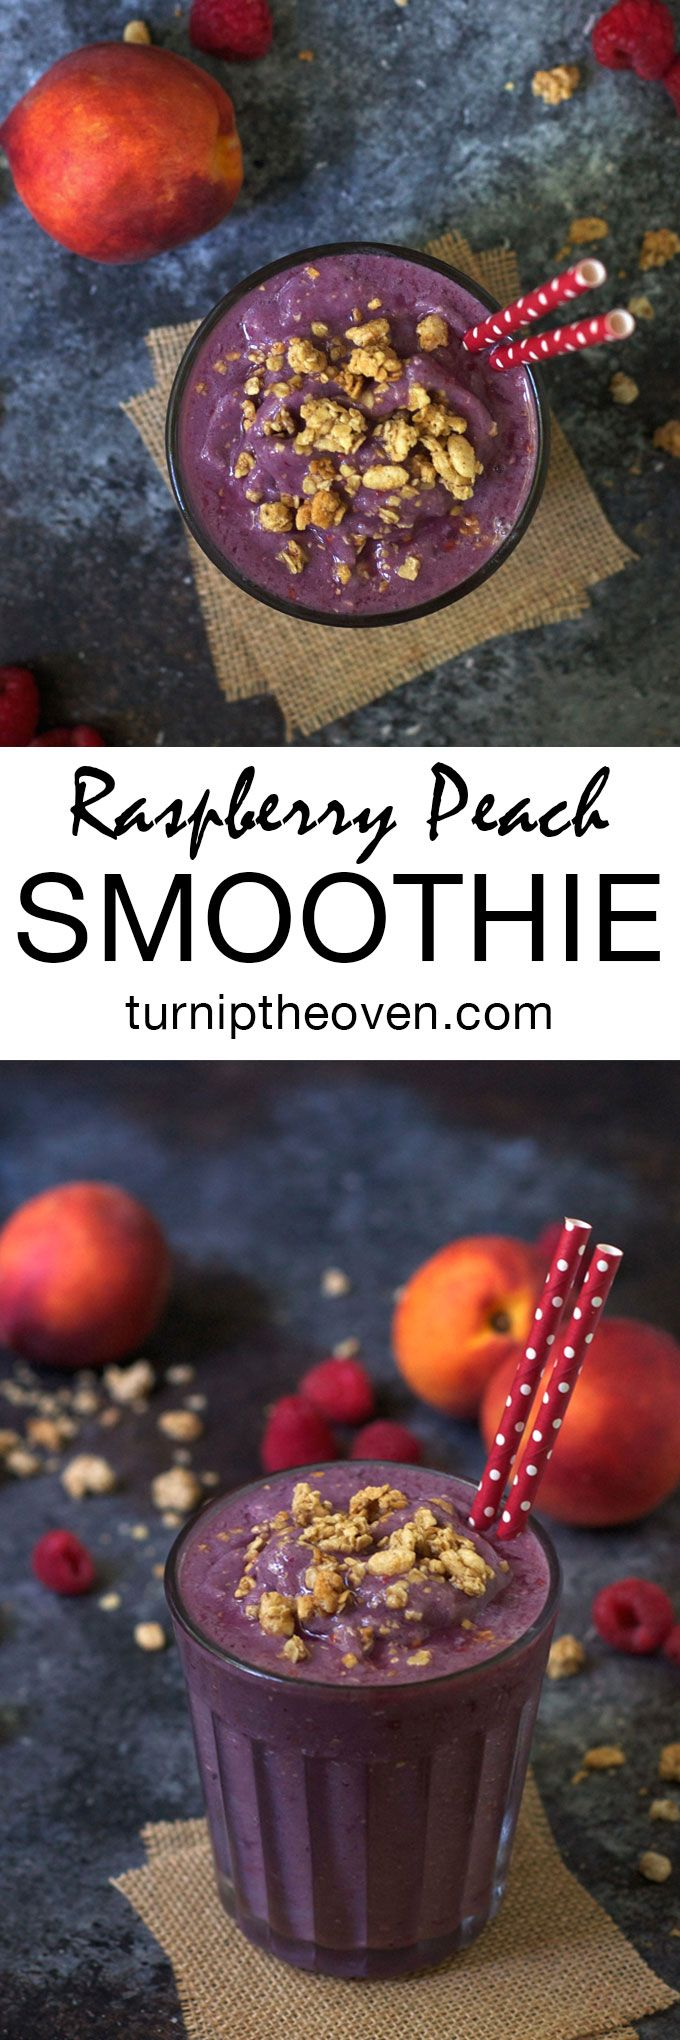 This gluten-free, vegan smoothie is bursting with juicy raspberry and peach flavor! Use either fresh or frozen fruit for a satisfying and healthy breakfast, any time of the year.